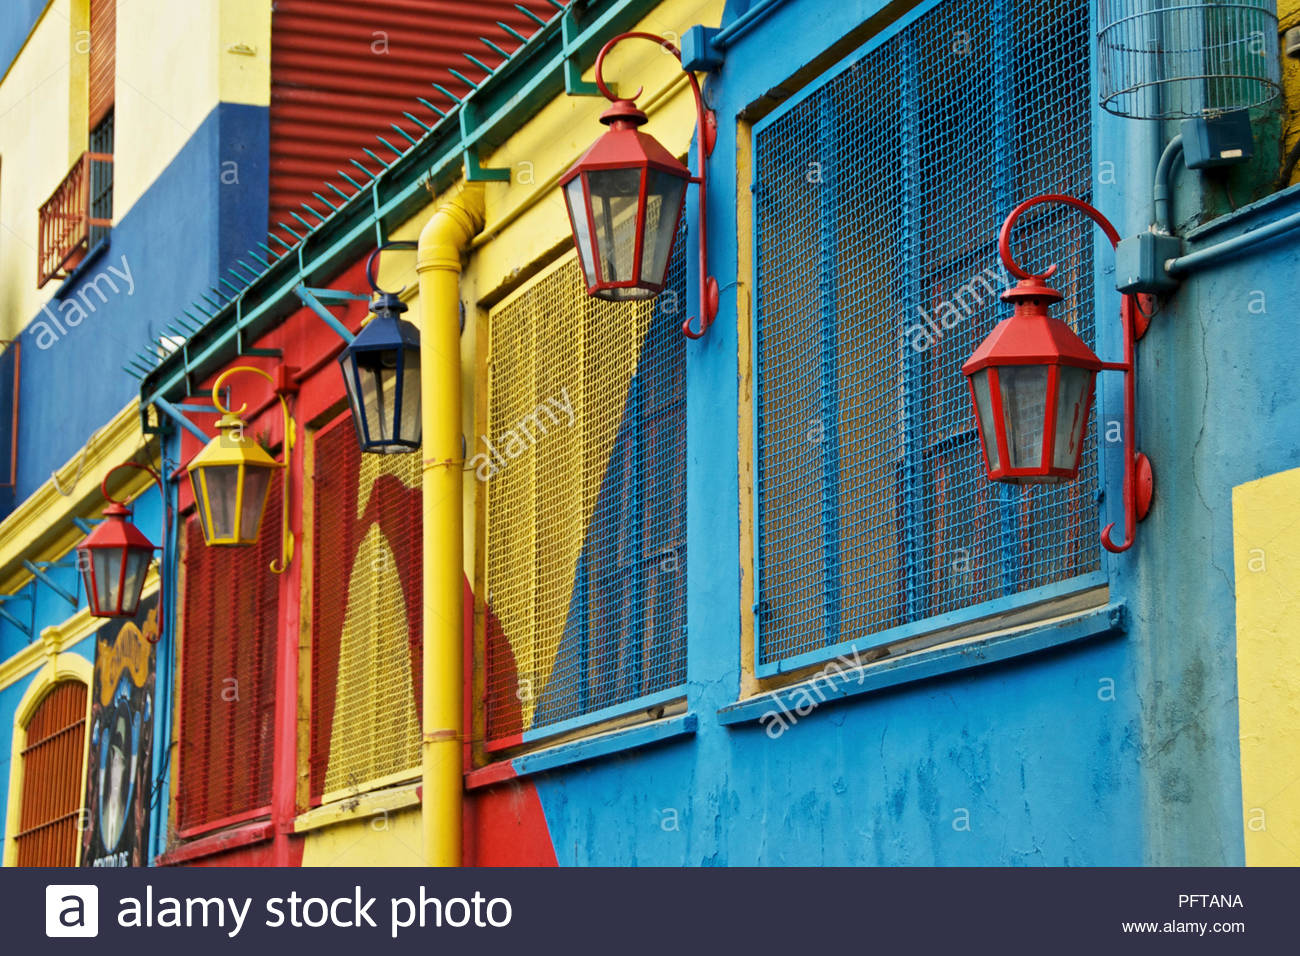 South America, colourfully painted building with street lamps, La Boca district, Buenos Aires, Argentina - Stock Image